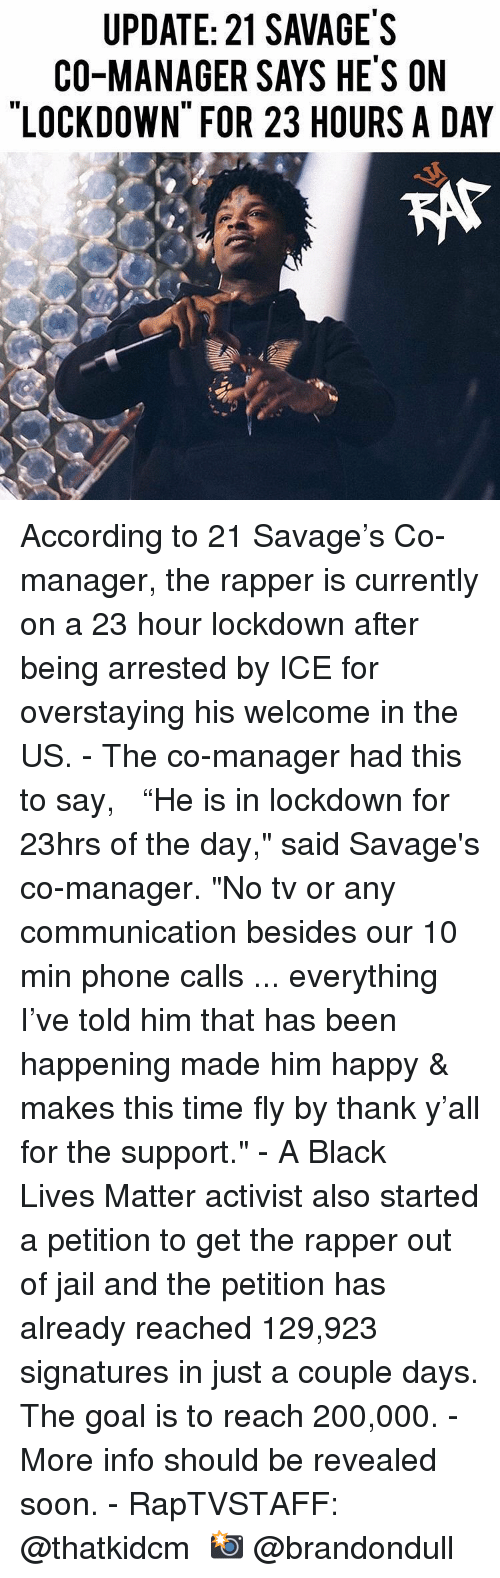 "Bailey Jay, Black Lives Matter, and Jail: UPDATE: 21 SAVAGE'S  CO-MANAGER SAYS HE'S ON  LOCKDOWN FOR 23 HOURS A DAY  KAt According to 21 Savage's Co-manager, the rapper is currently on a 23 hour lockdown after being arrested by ICE for overstaying his welcome in the US.⁣ -⁣ The co-manager had this to say, ⁣ ⁣ ""He is in lockdown for 23hrs of the day,"" said Savage's co-manager. ""No tv or any communication besides our 10 min phone calls ... everything I've told him that has been happening made him happy & makes this time fly by thank y'all for the support.""⁣ -⁣ A Black Lives Matter activist also started a petition to get the rapper out of jail and the petition has already reached 129,923 signatures in just a couple days. The goal is to reach 200,000.⁣ -⁣ More info should be revealed soon.⁣ -⁣ RapTVSTAFF: @thatkidcm⁣ 📸 @brandondull"